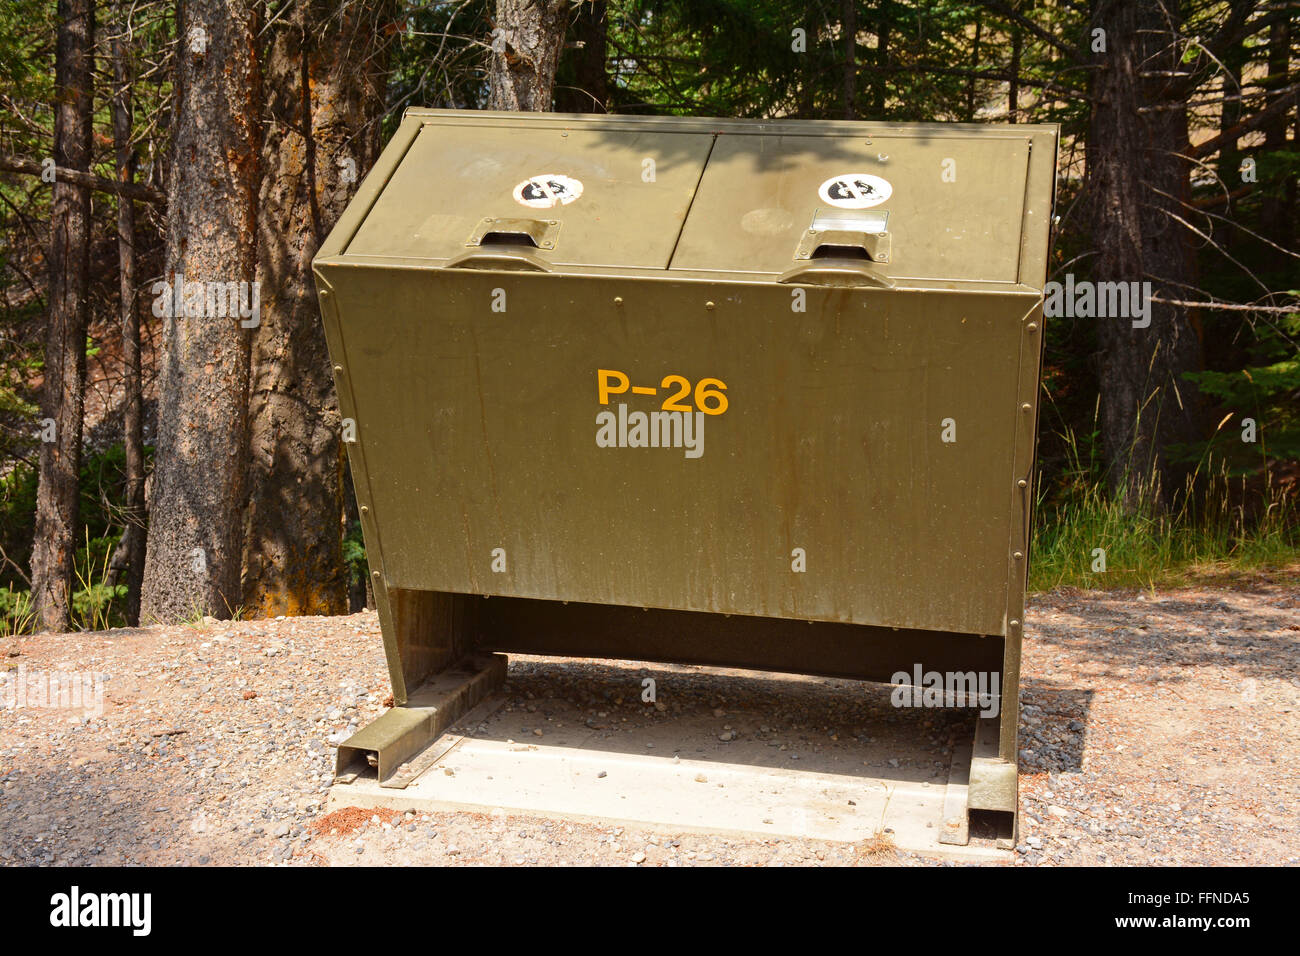 Bear Garbage Can Stock Photos & Bear Garbage Can Stock Images - Alamy